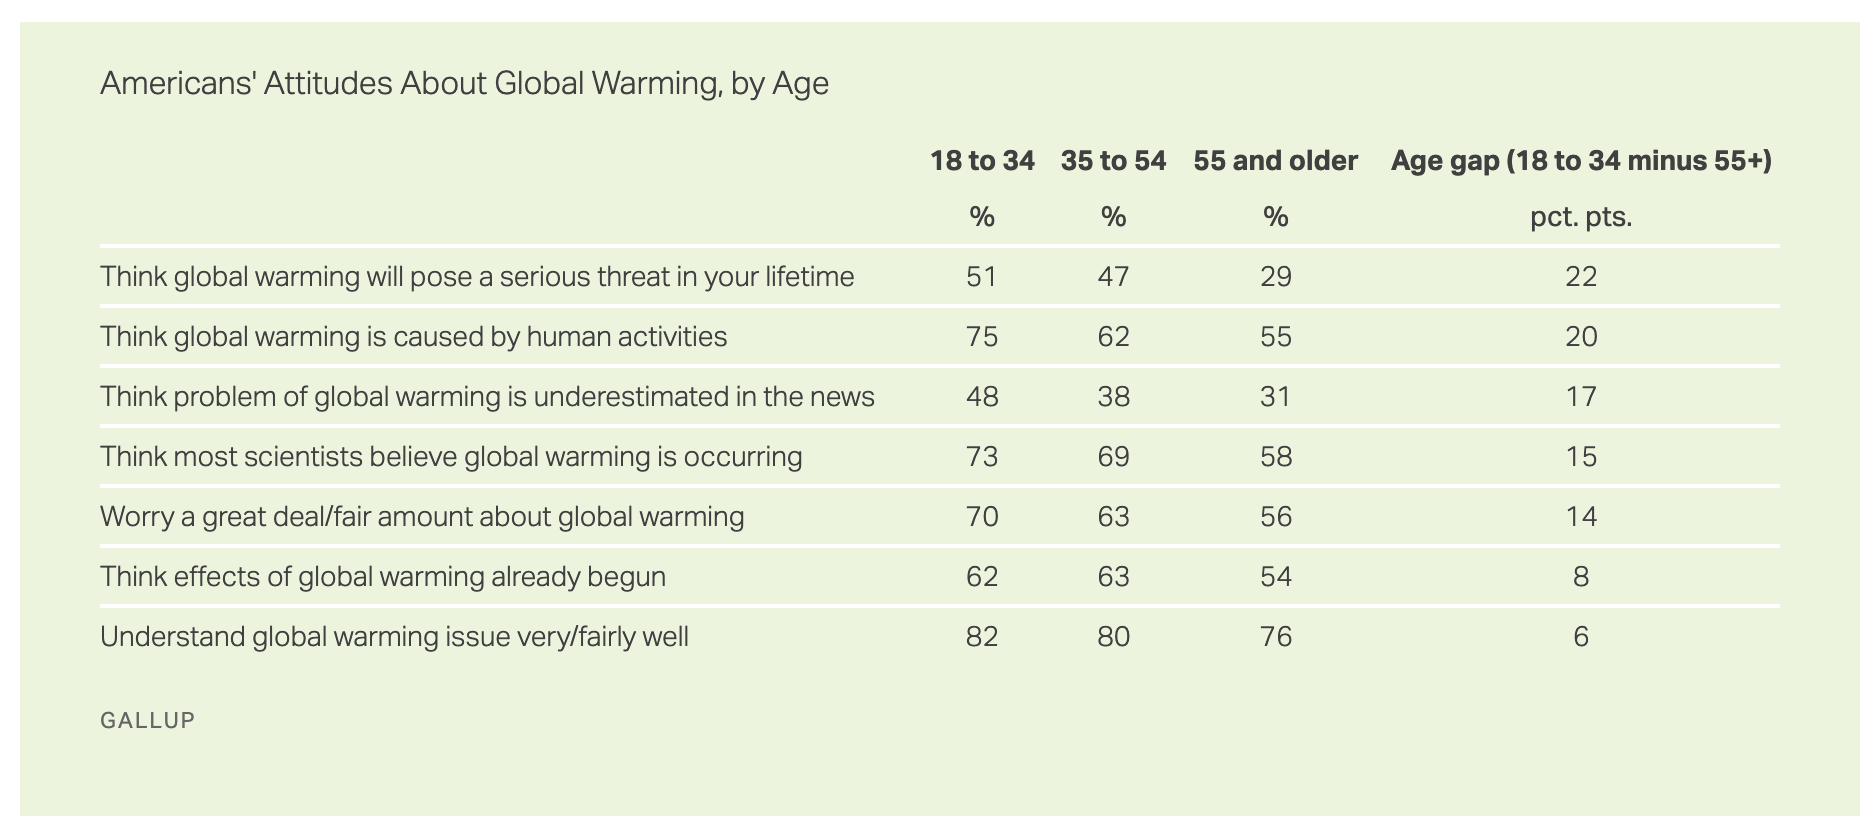 Age gap in climate change acceptance and action in the USA polling by Gallup